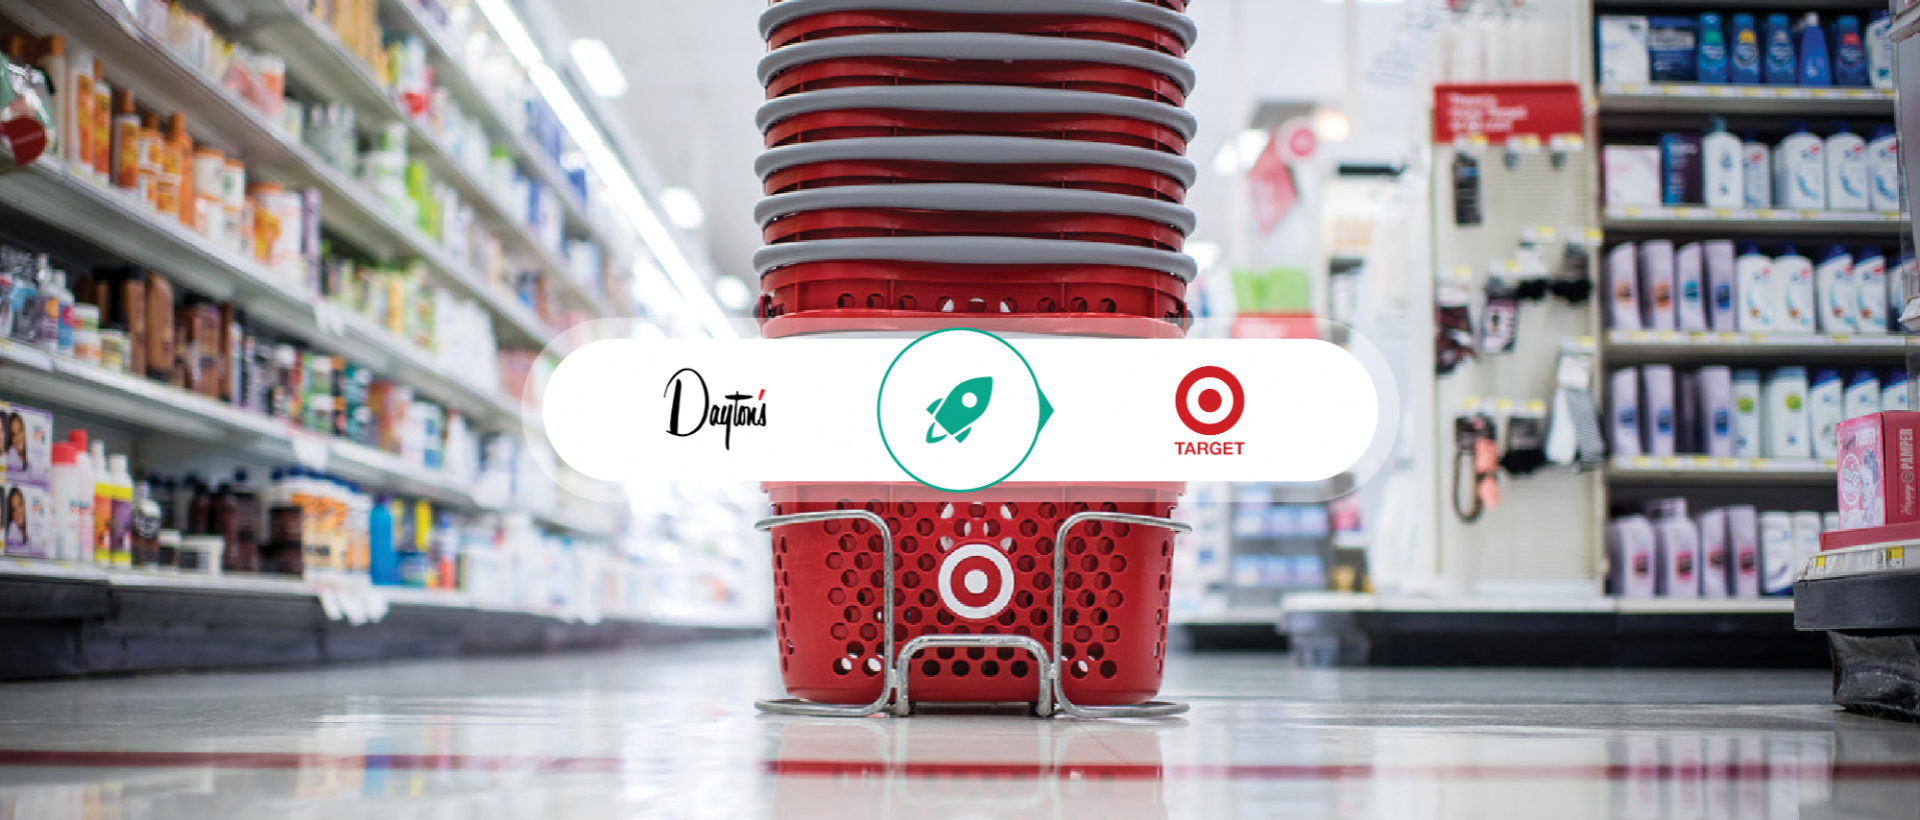 Target: from internal startup to the second-largest department store retailer in the US